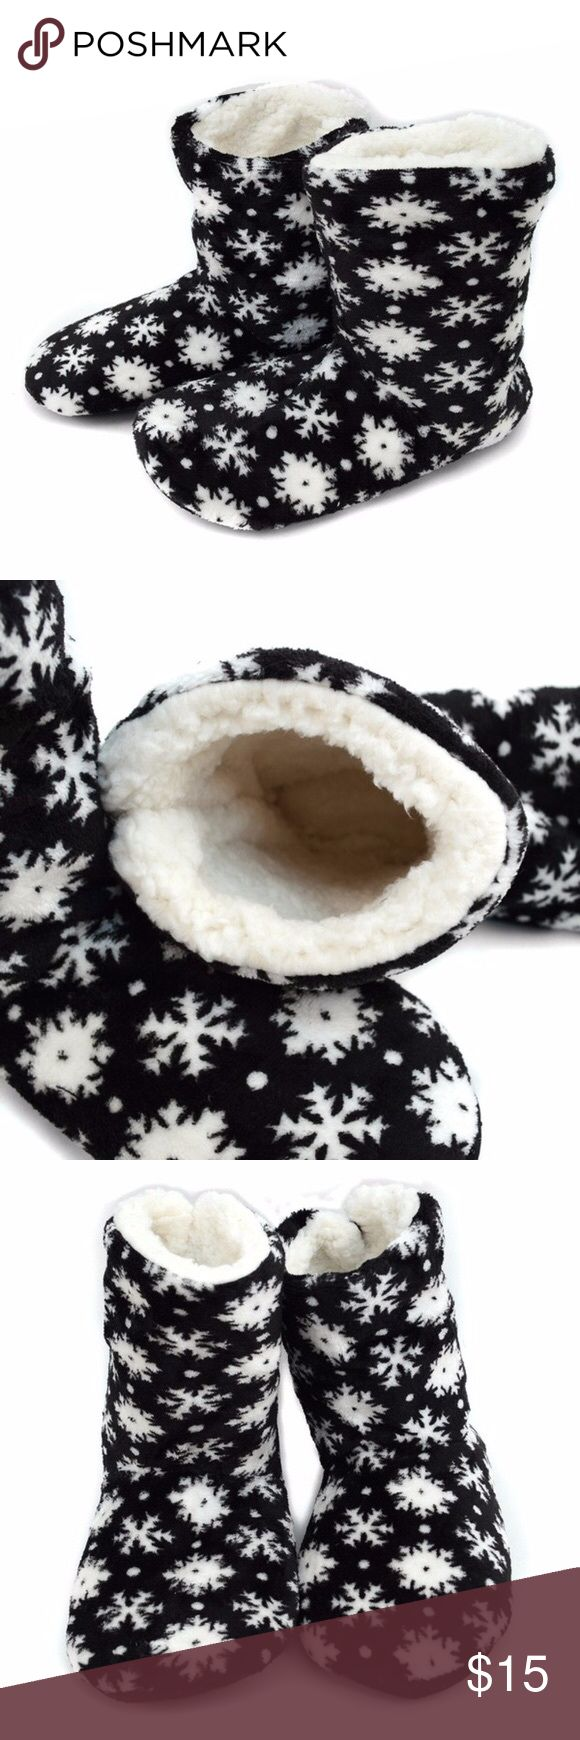 """Winter Snowflake Slippers Faux Fur Non-Slip Bottom Winter Snowflake Slippers Faux Fur Non-Slip Bottom Holiday Winter Gift    The inside is entirely lined with super soft faux fur. Can be worn to cover your ankles or folded down!  Perfect for everyday wear or as a gift  Fuzzy exterior, Ultra soft fleecy interior lining, Beaded rubber bottoms for non-slip grip    S fits: ladies shoe size 5-6 Bottom Size : 9.5""""  M fits: ladies shoe size 7-8 Bottom Size : 10""""  L fits: ladies shoe size 9-11…"""